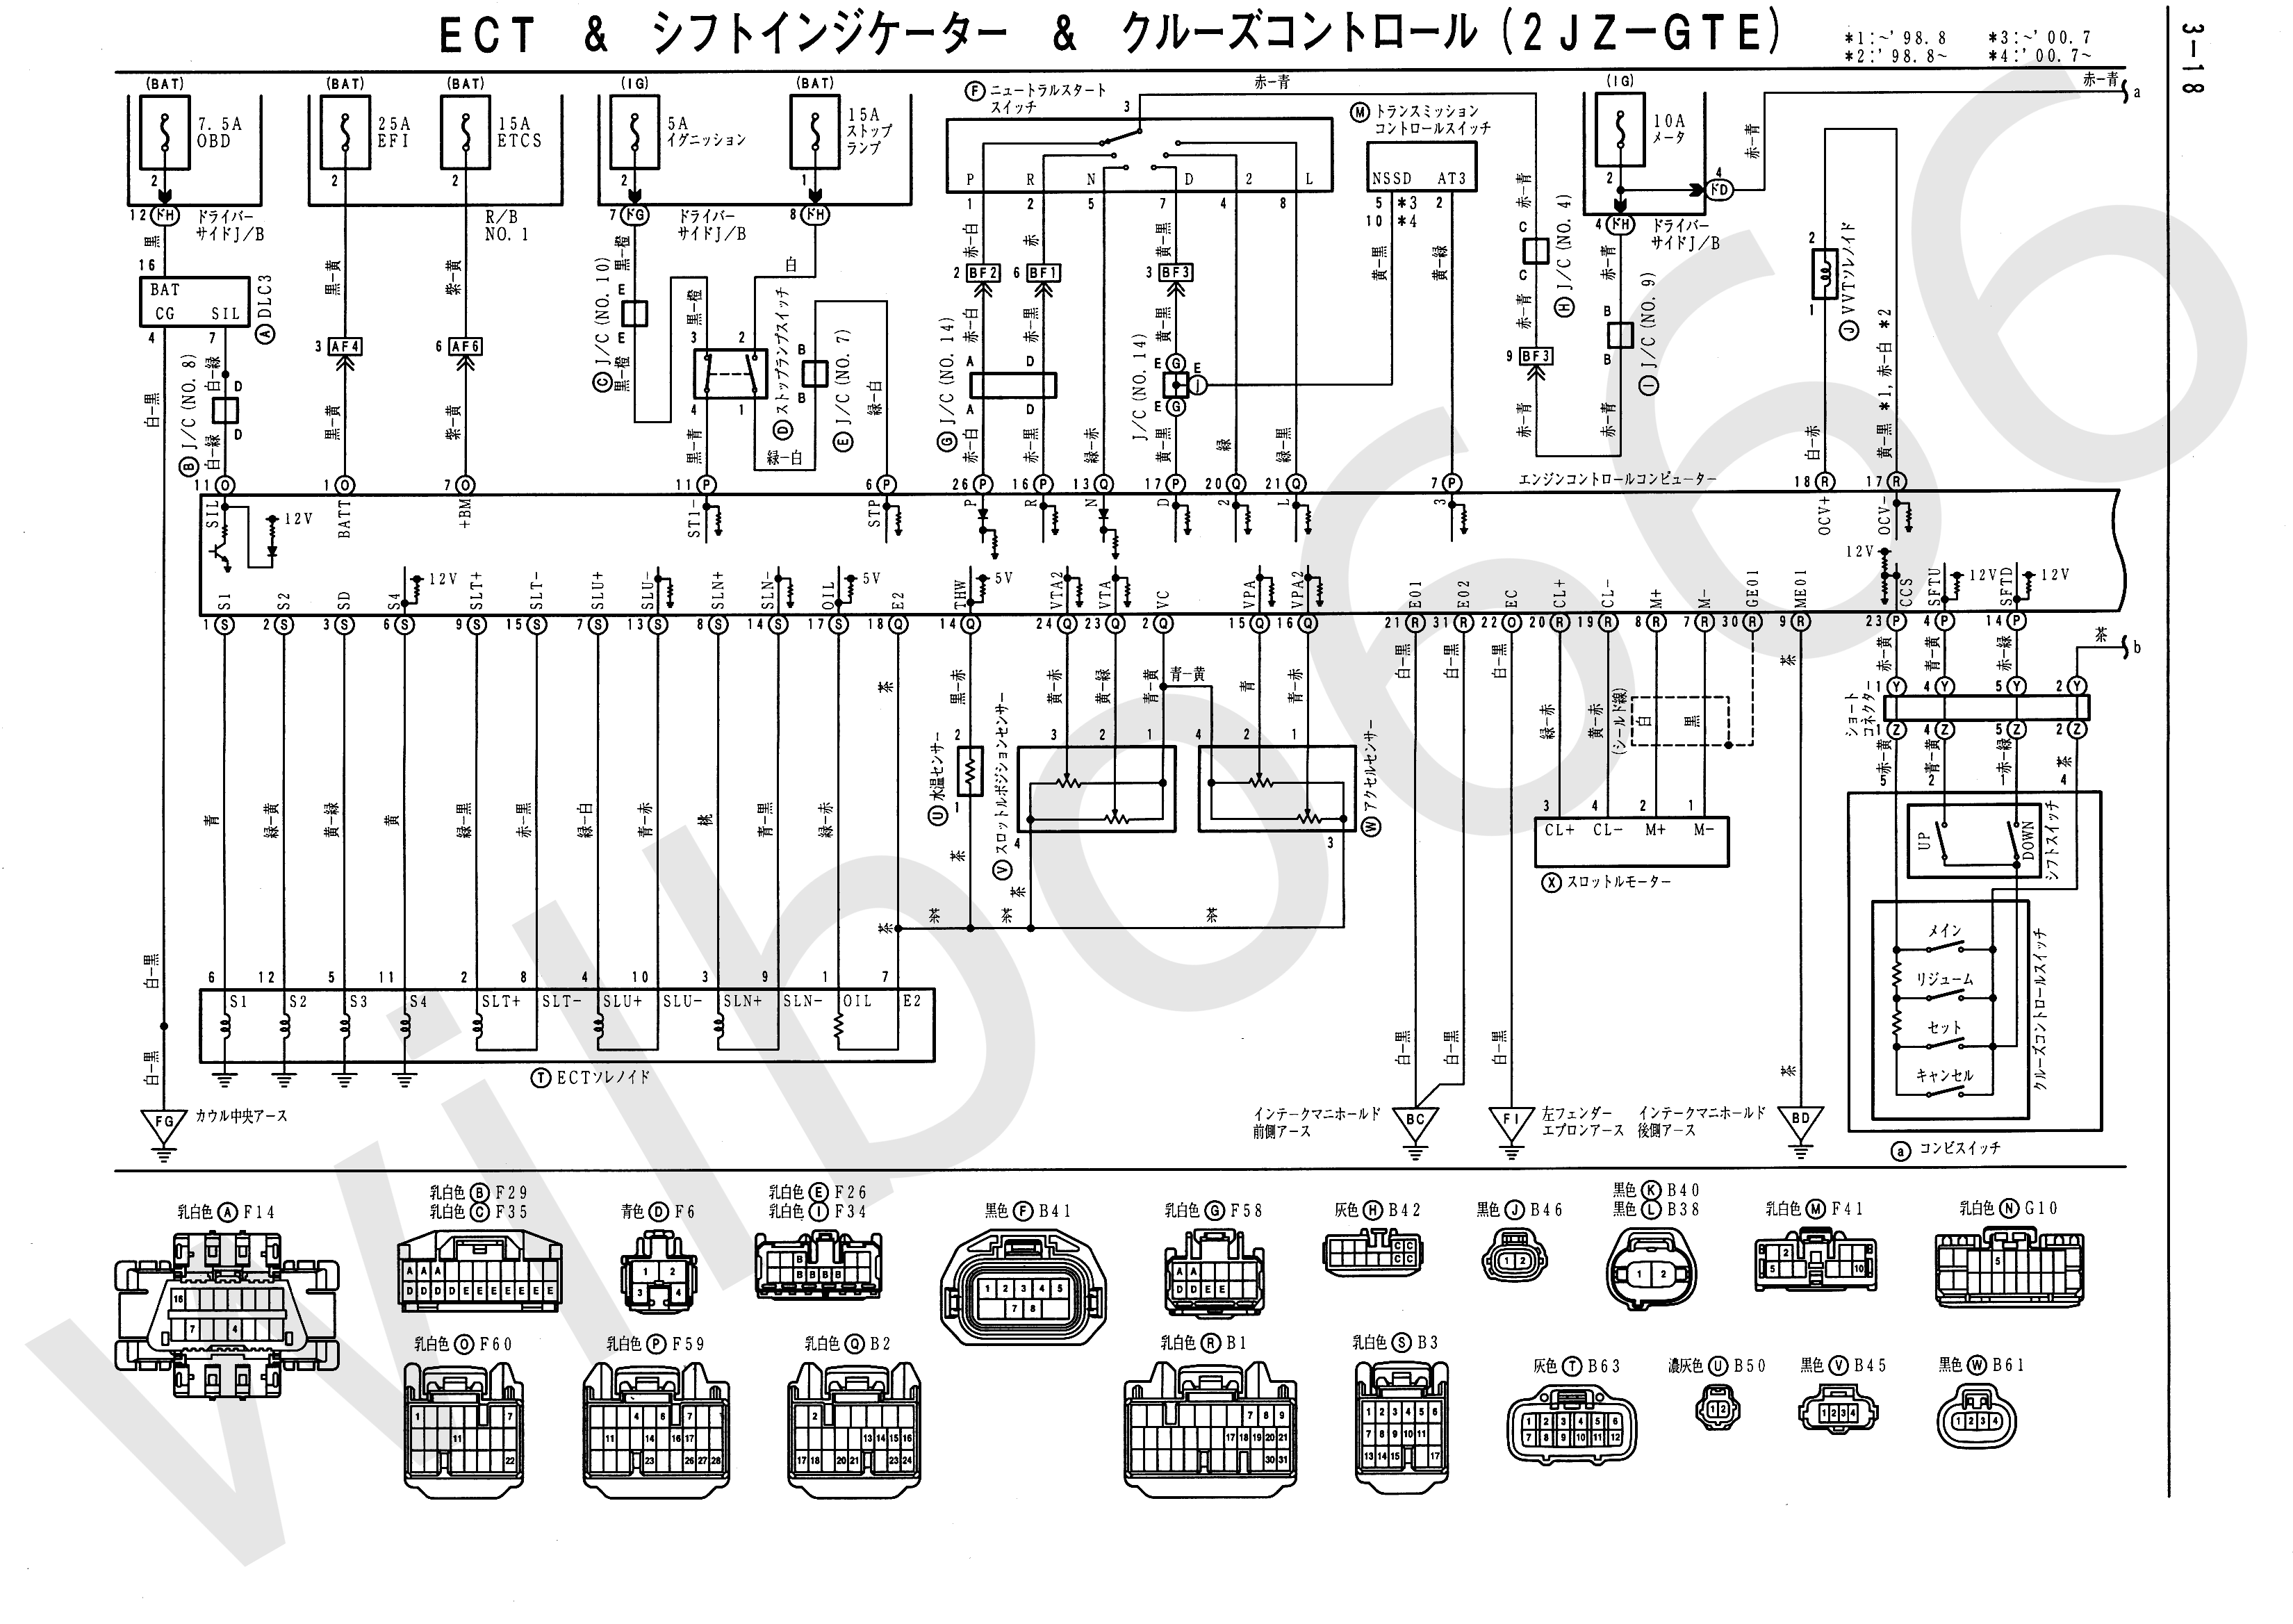 JZS161 Electrical Wiring Diagram 6748505 3 18 wilbo666 2jz gte vvti jzs161 aristo engine wiring 2jzgte vvti wiring harness at suagrazia.org